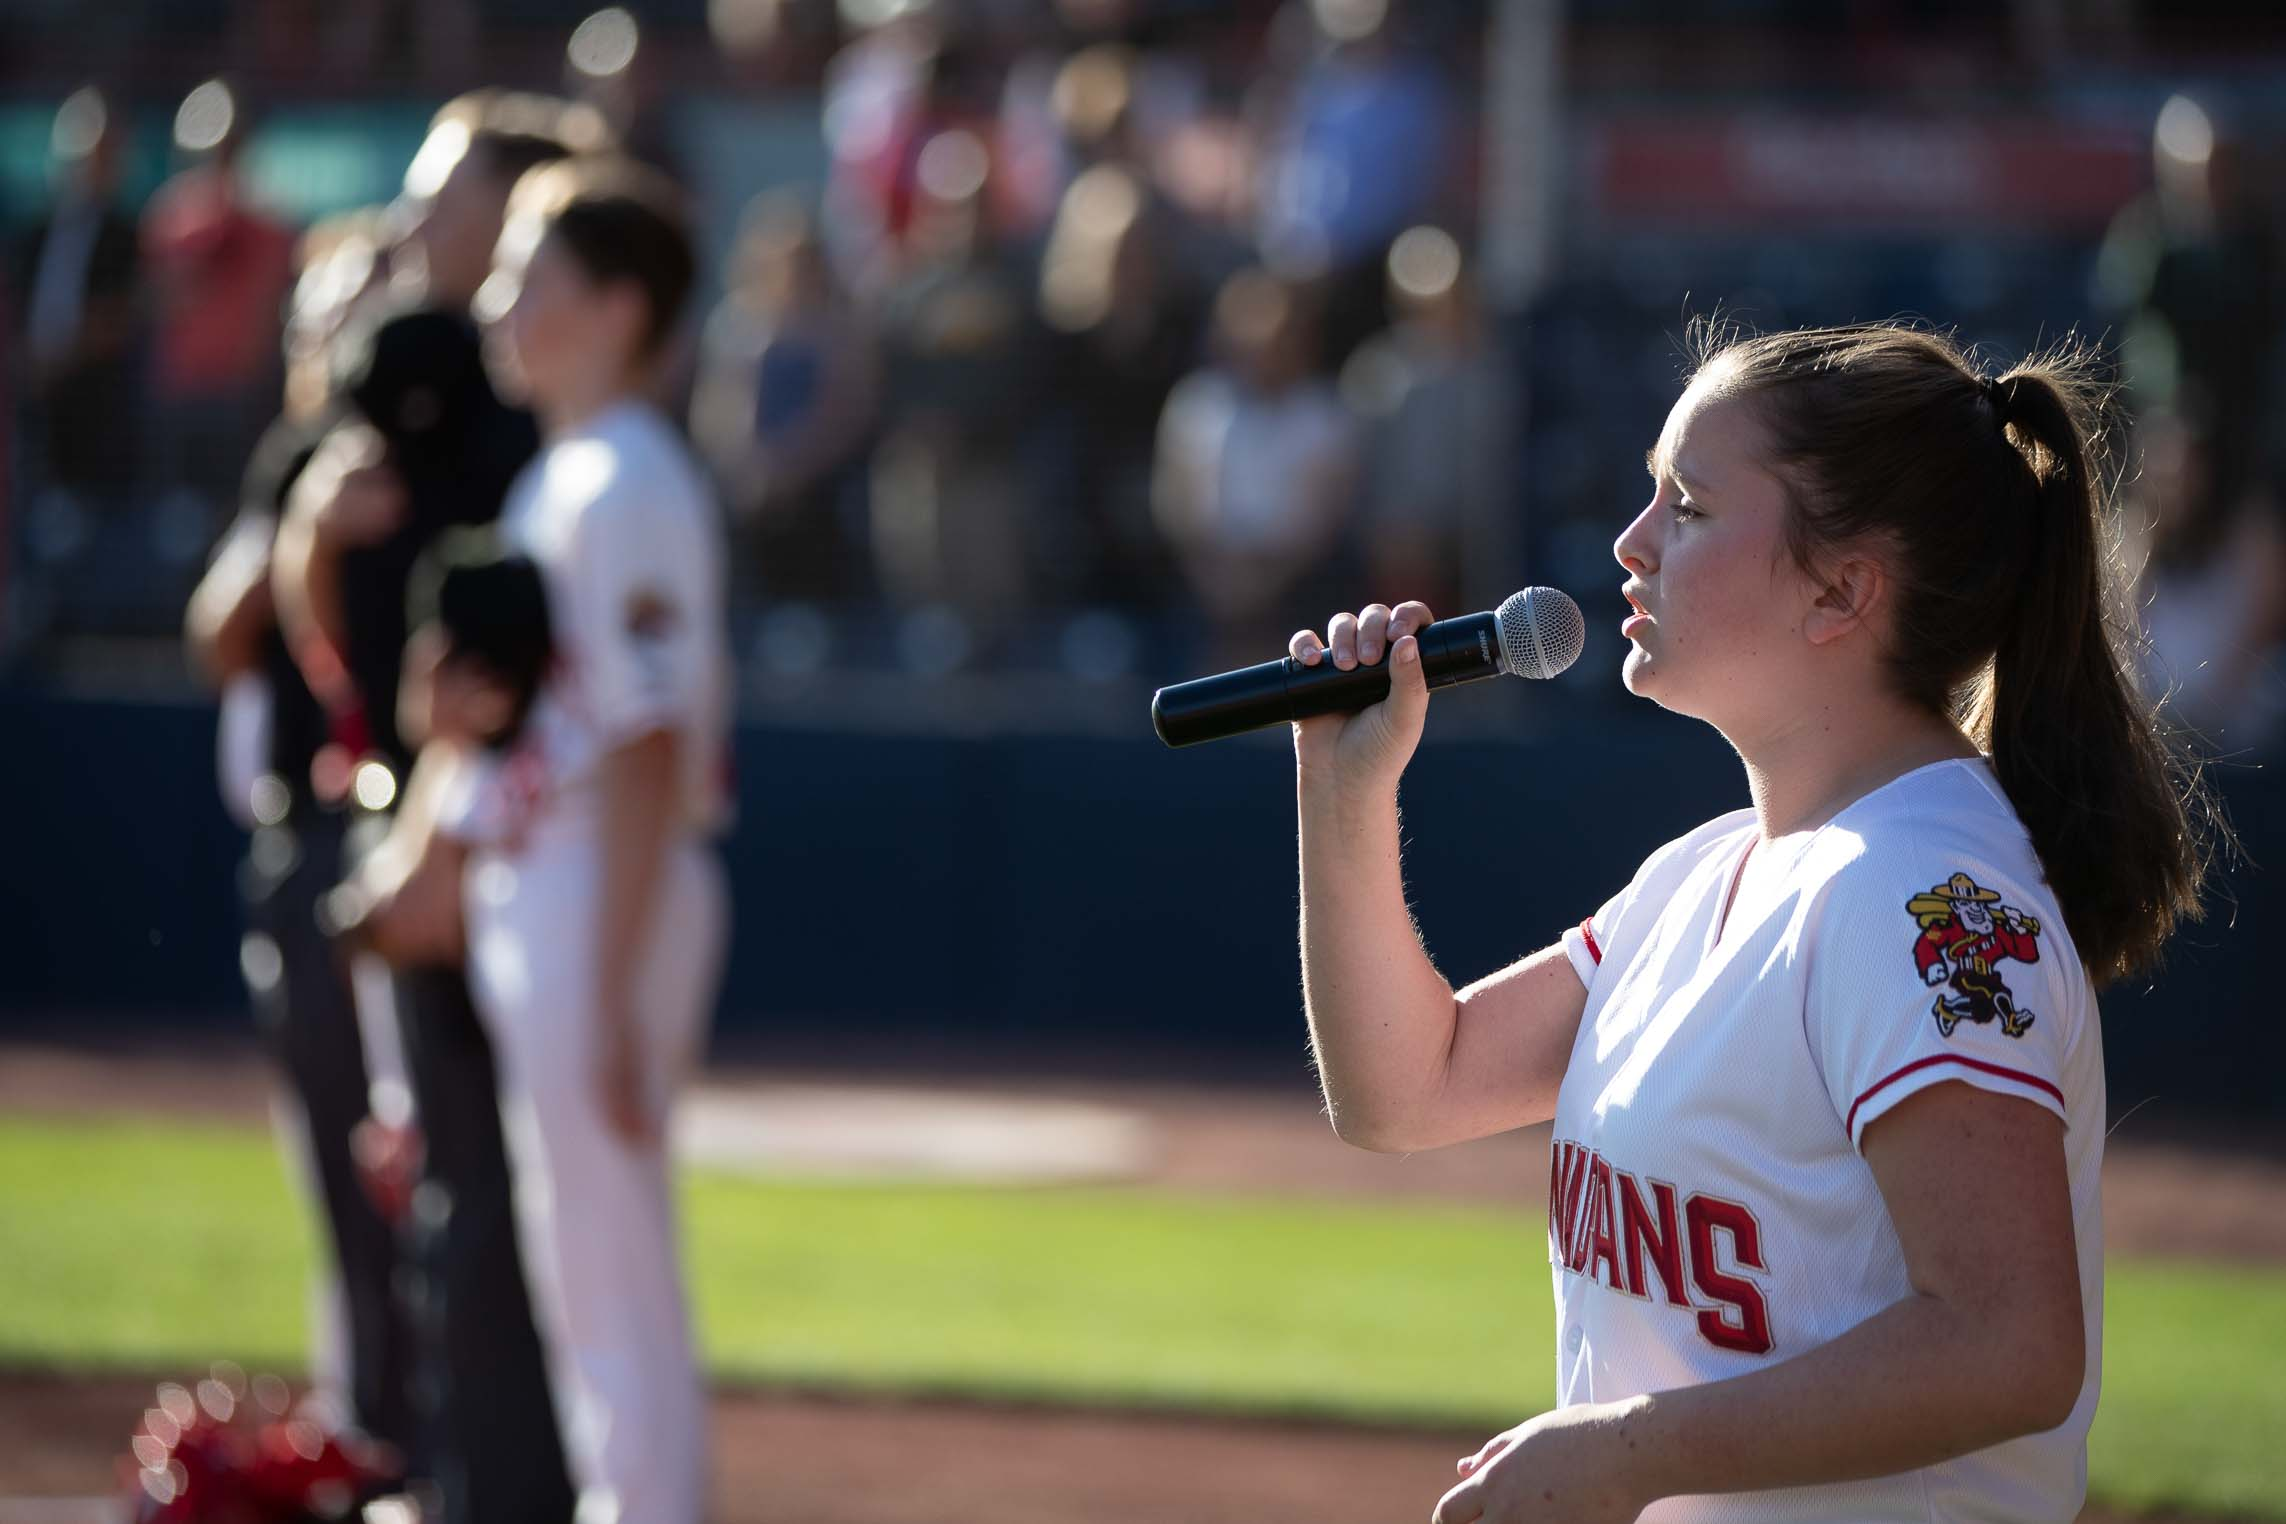 Anthem Ceremony-Softball BC Girls Provincial Championships – July 12th